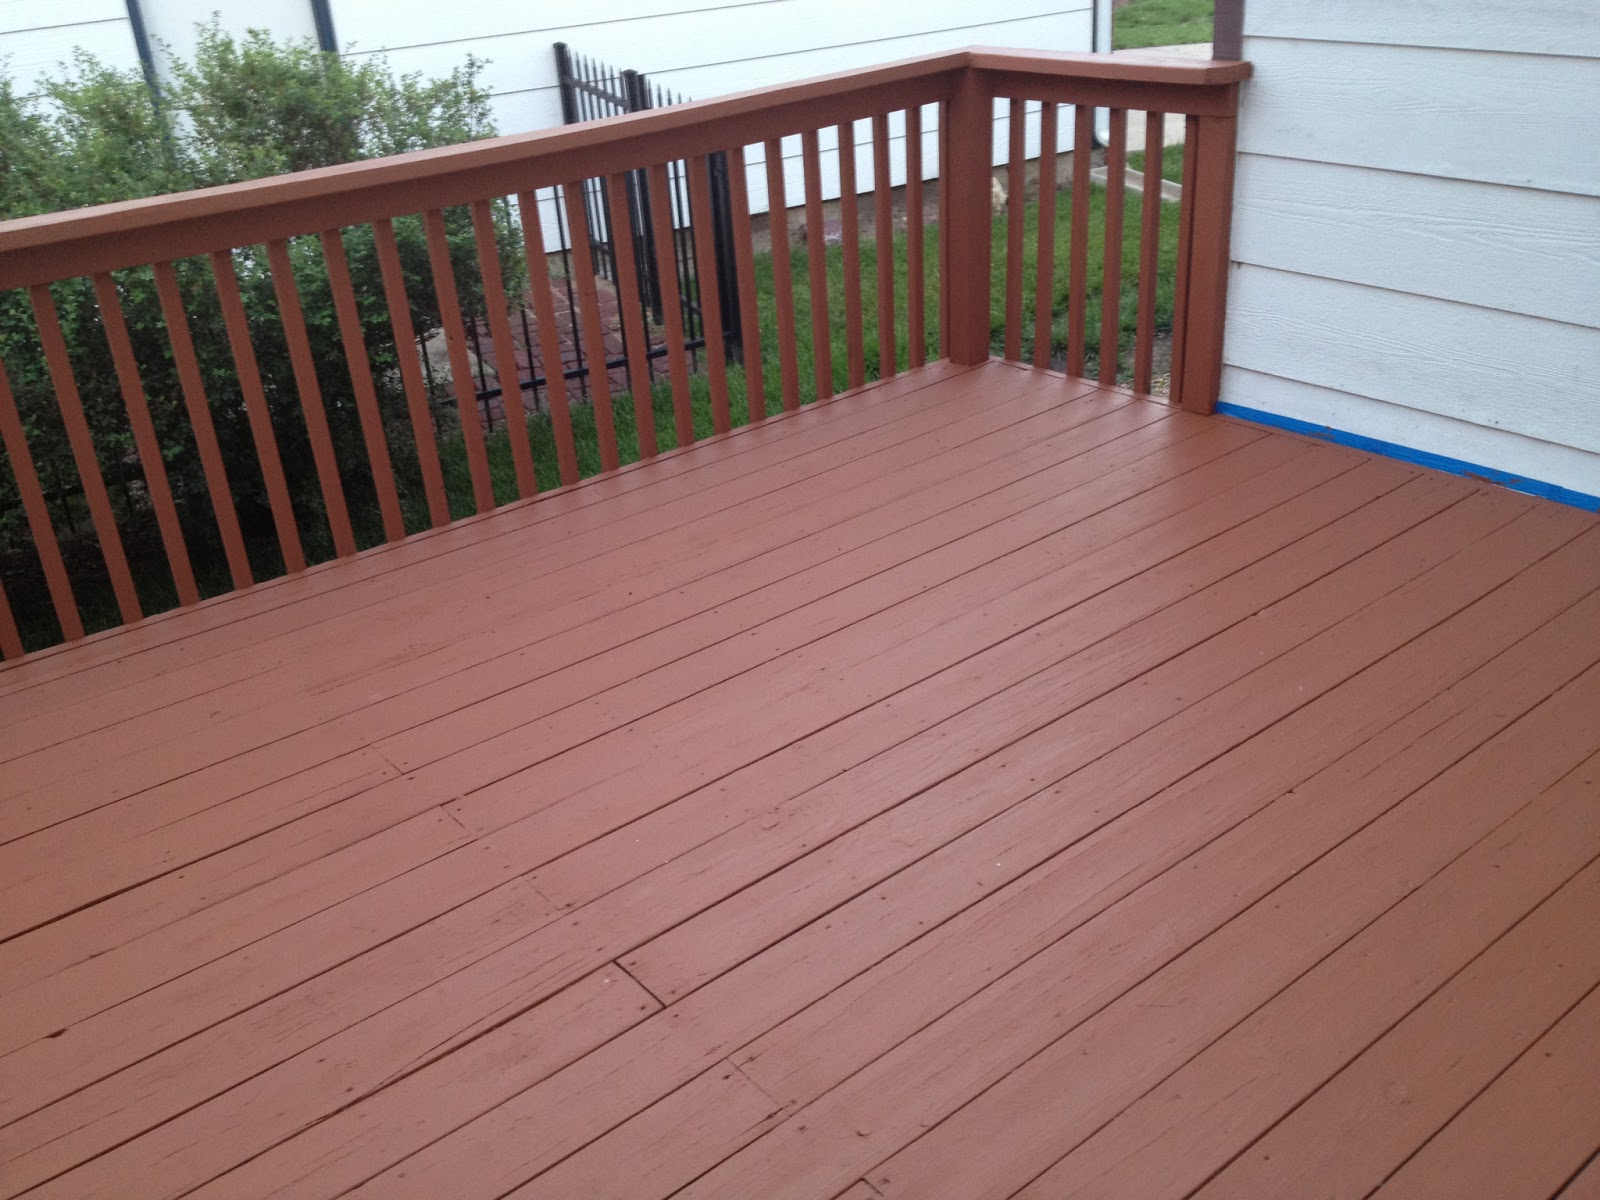 Exterior Design Exciting Behr Deckover Colors With Paint Wood Floor in measurements 1600 X 1200